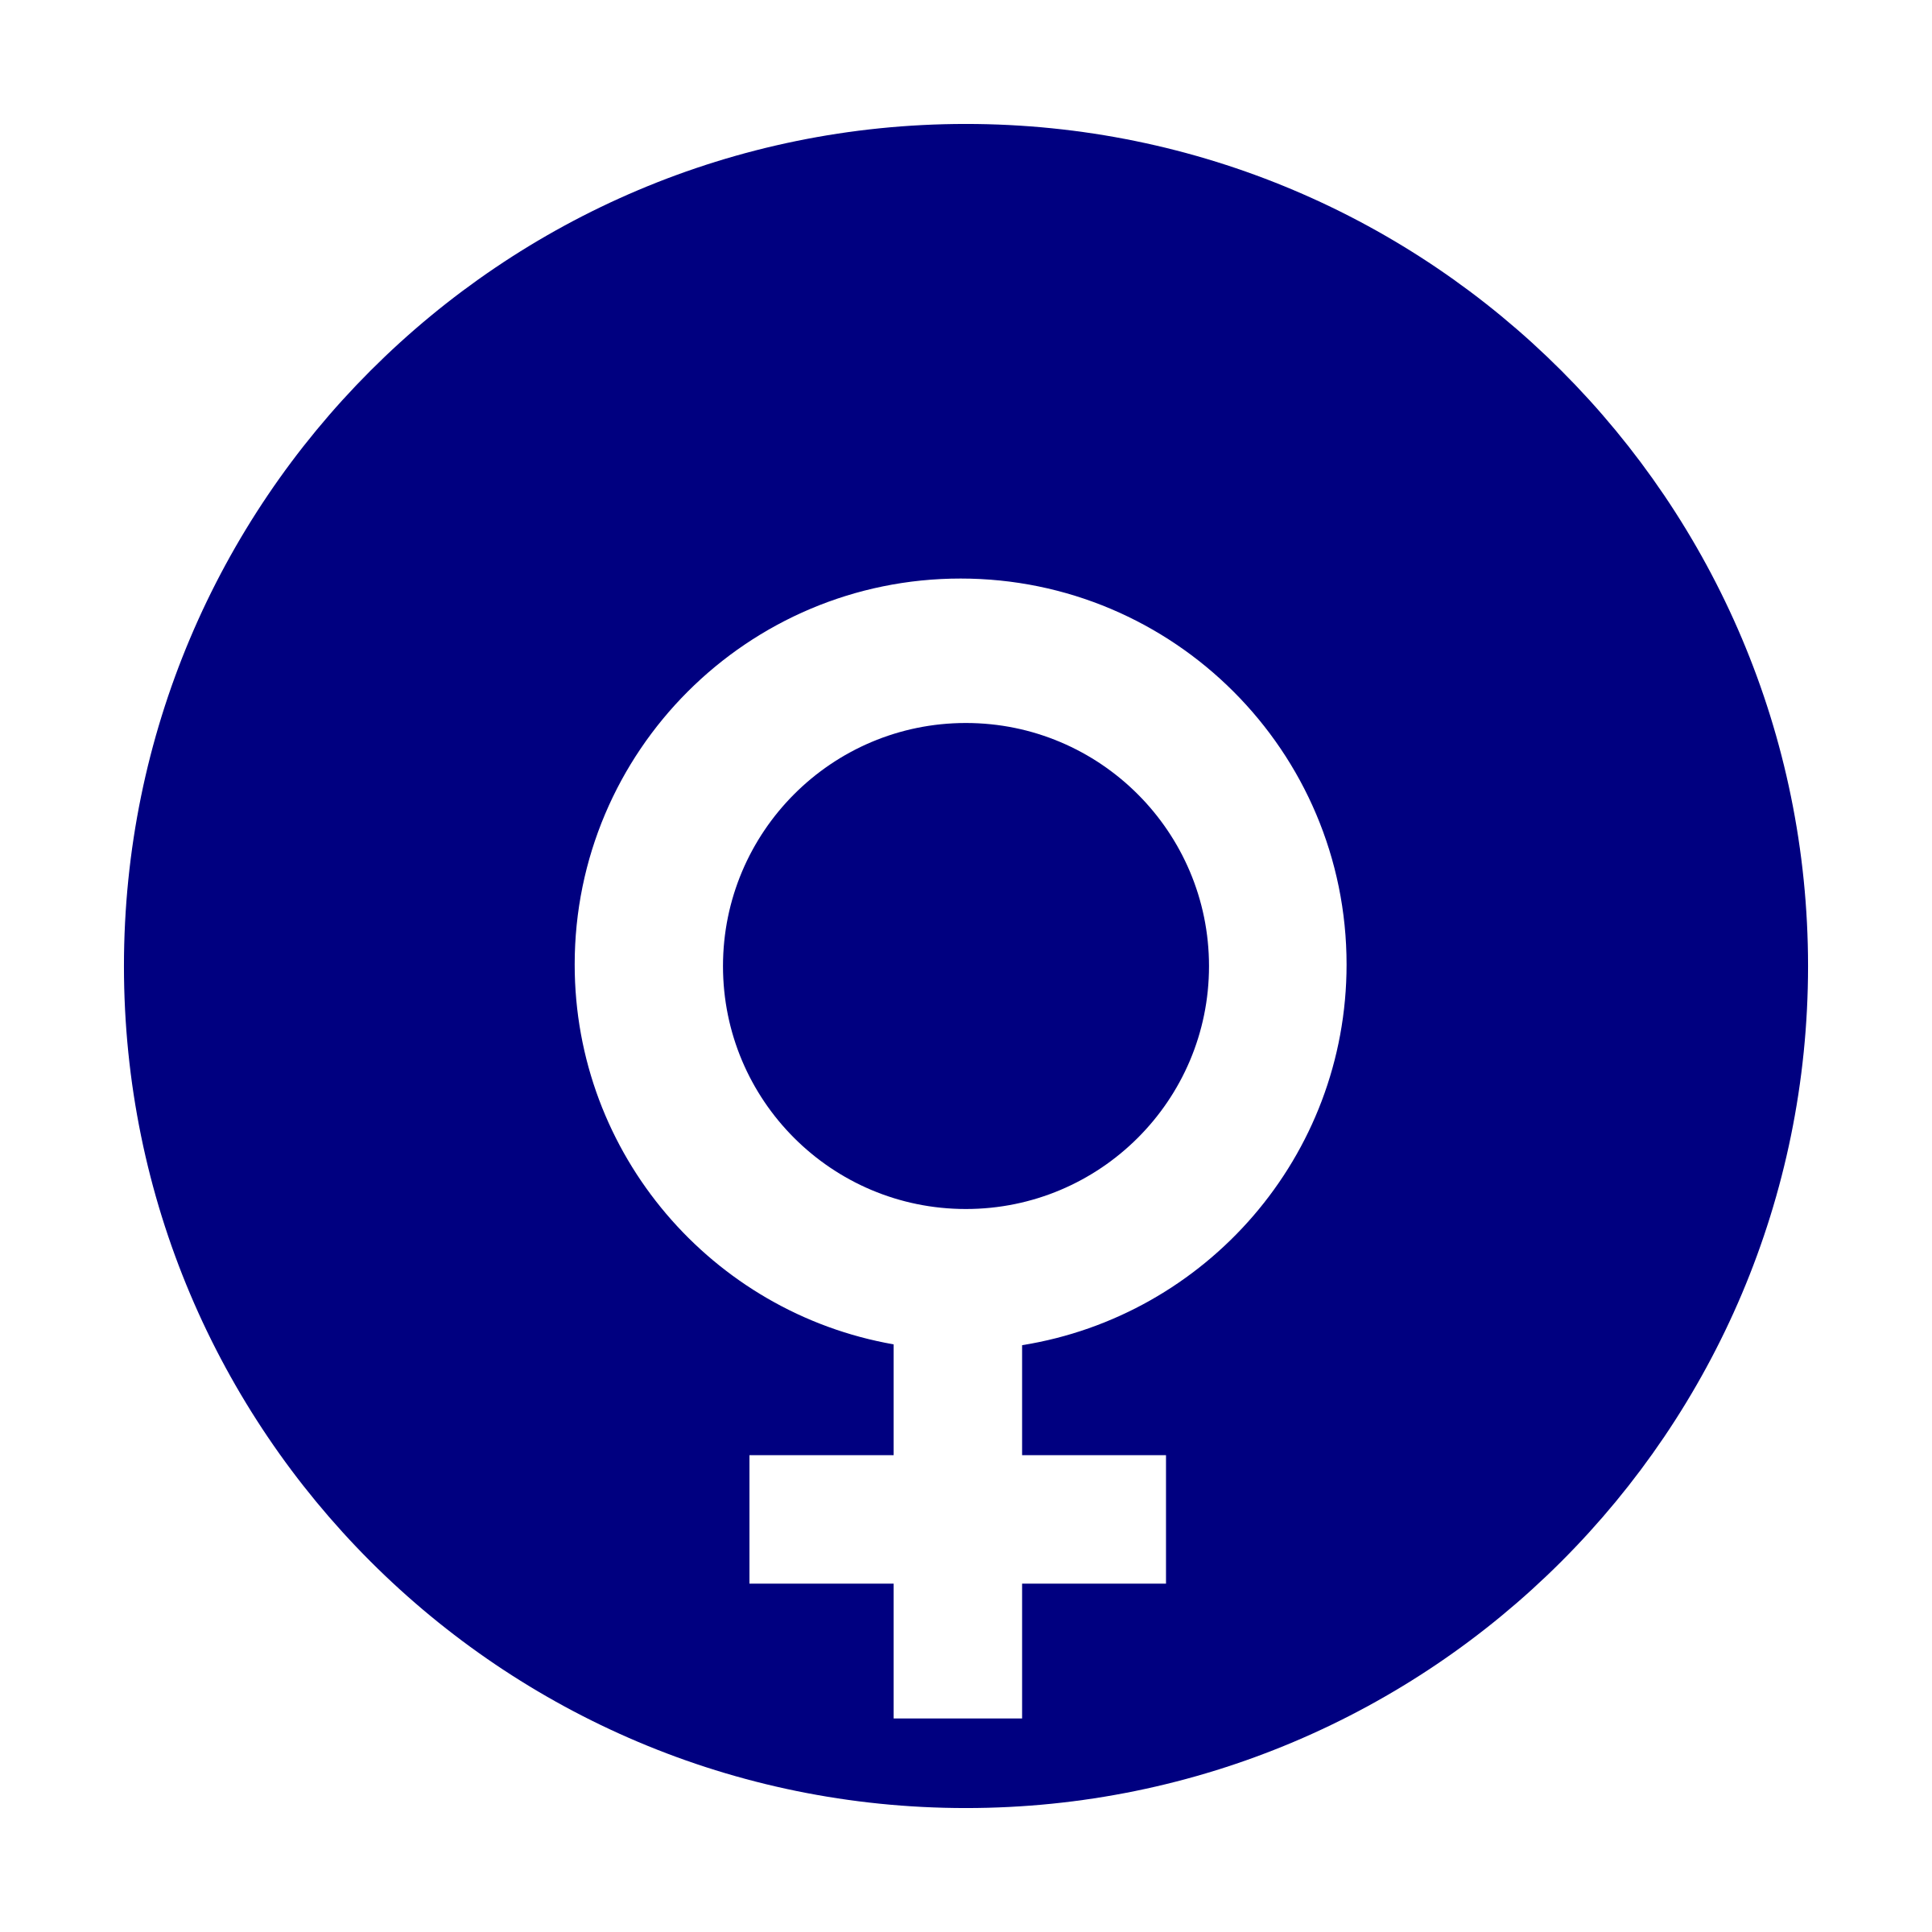 female gender symbol in a circle by worker